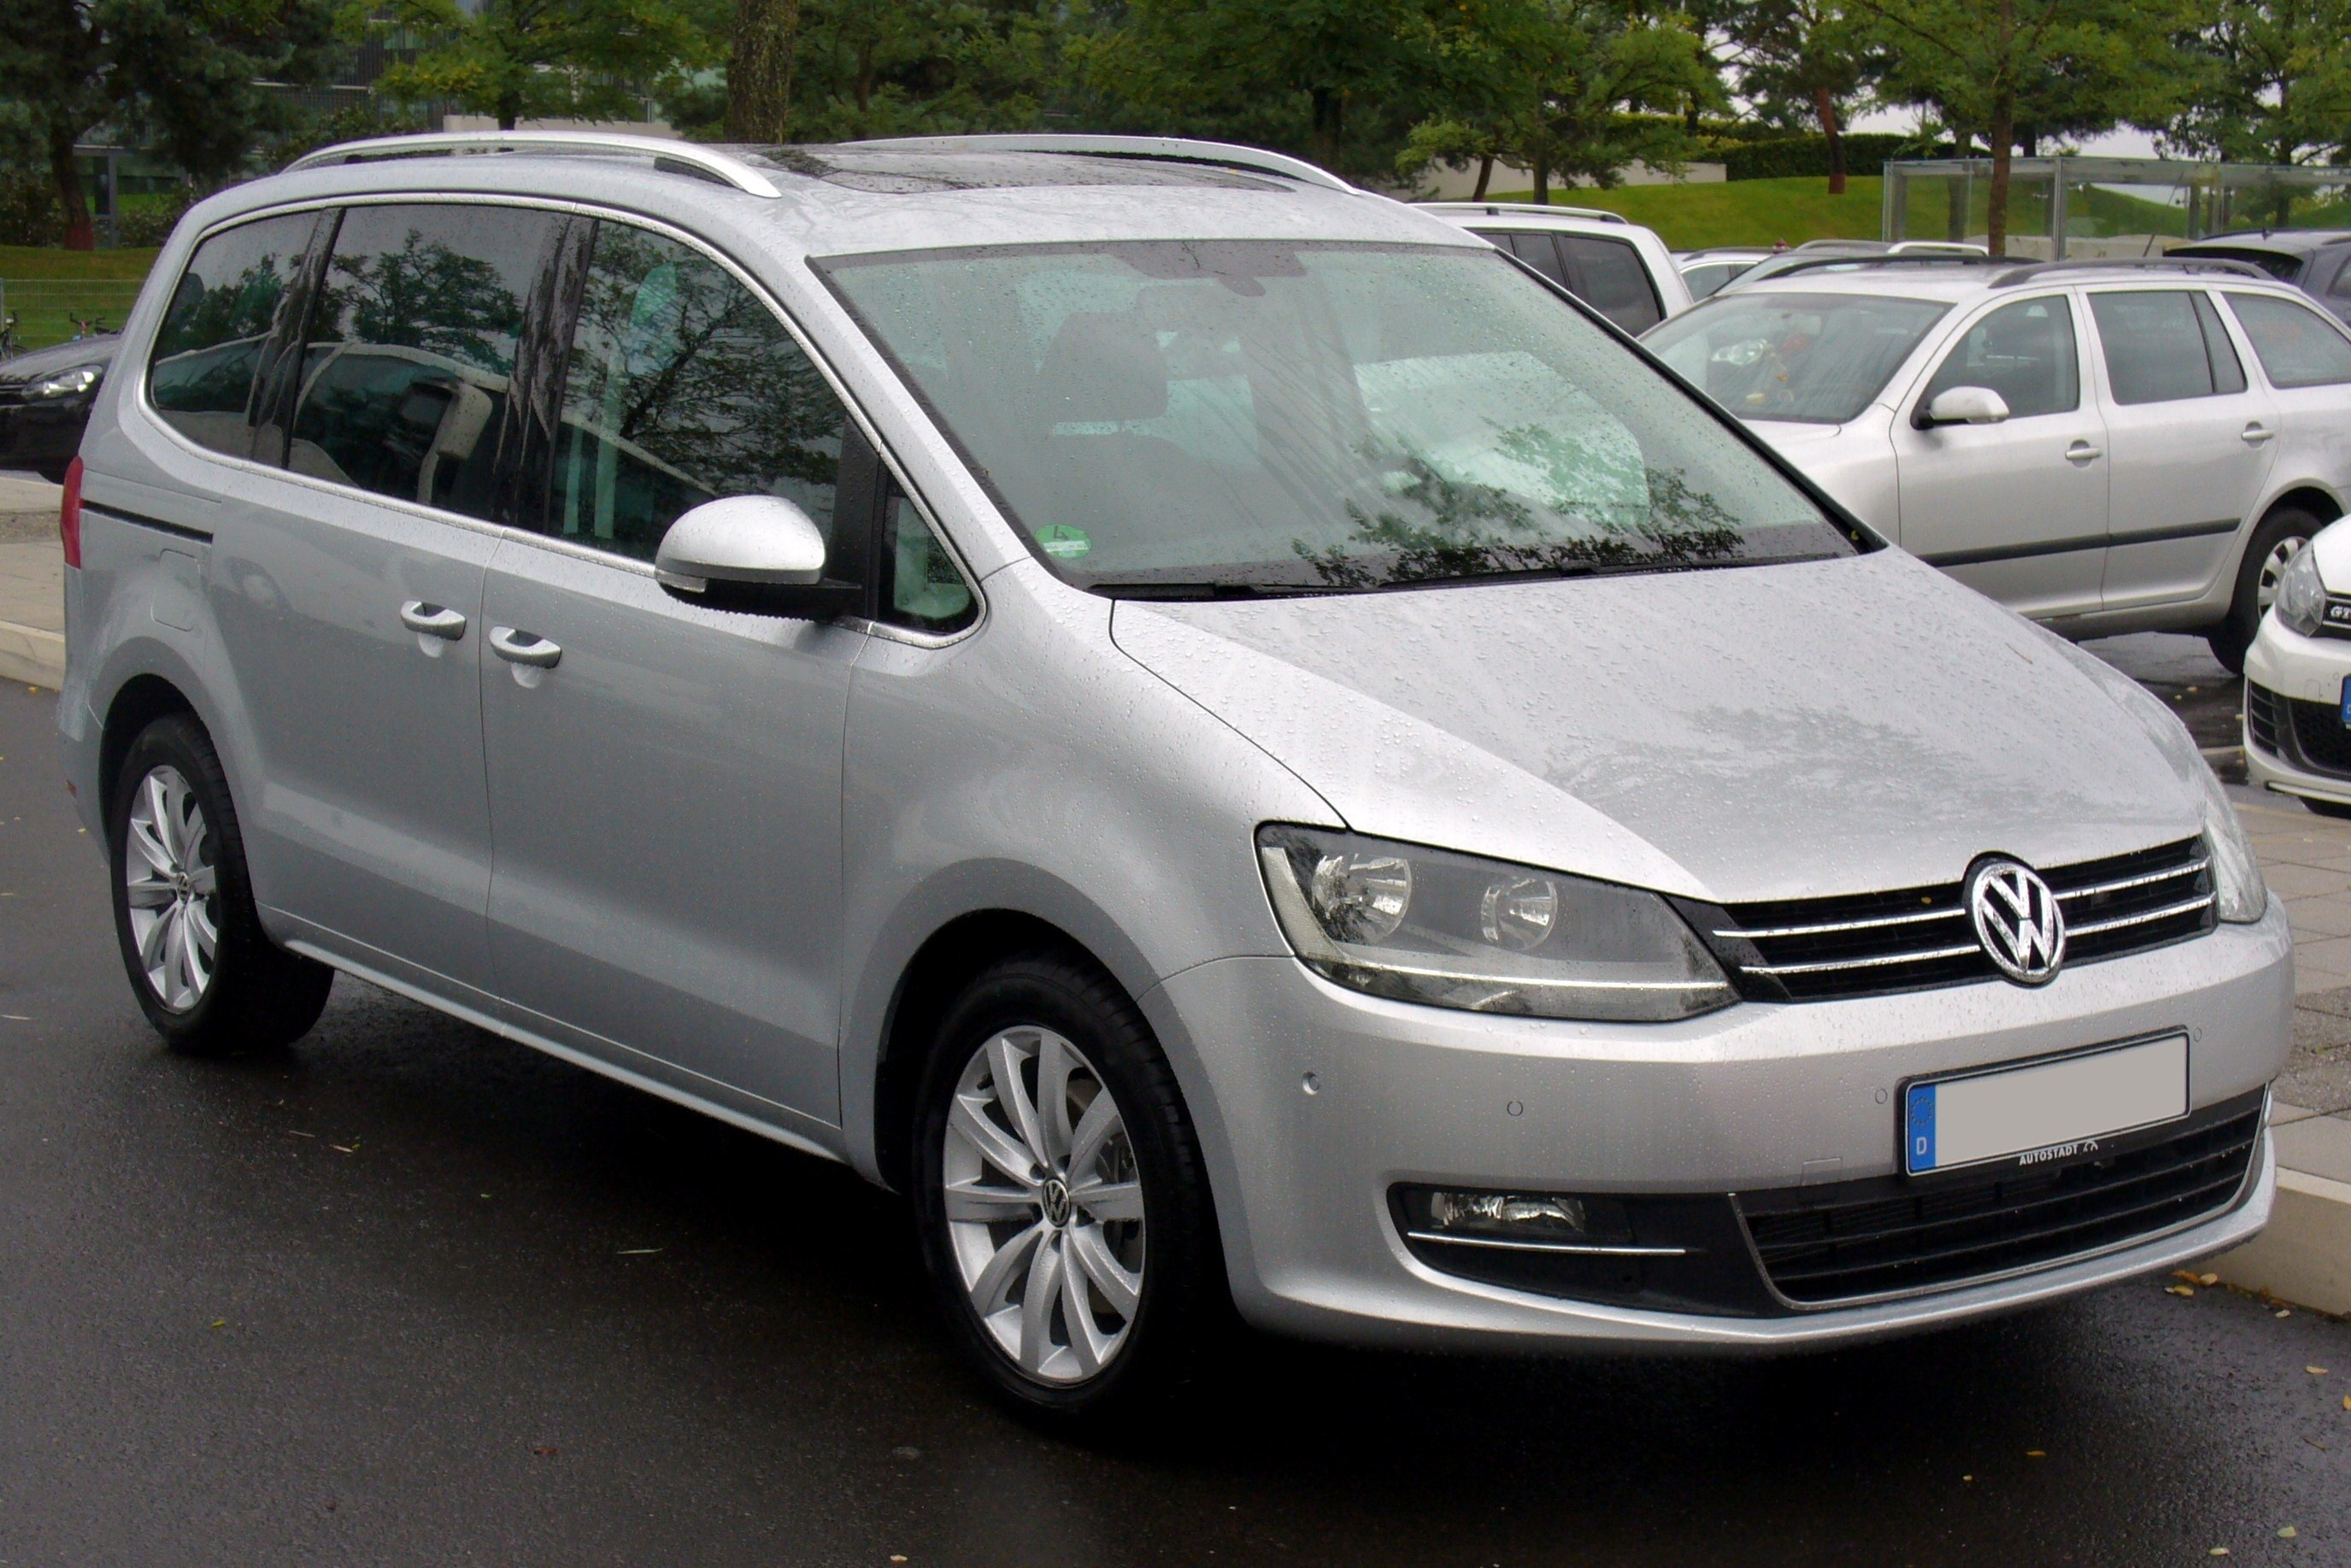 photo of Anatol Yusef Volkswagen Sharan - car